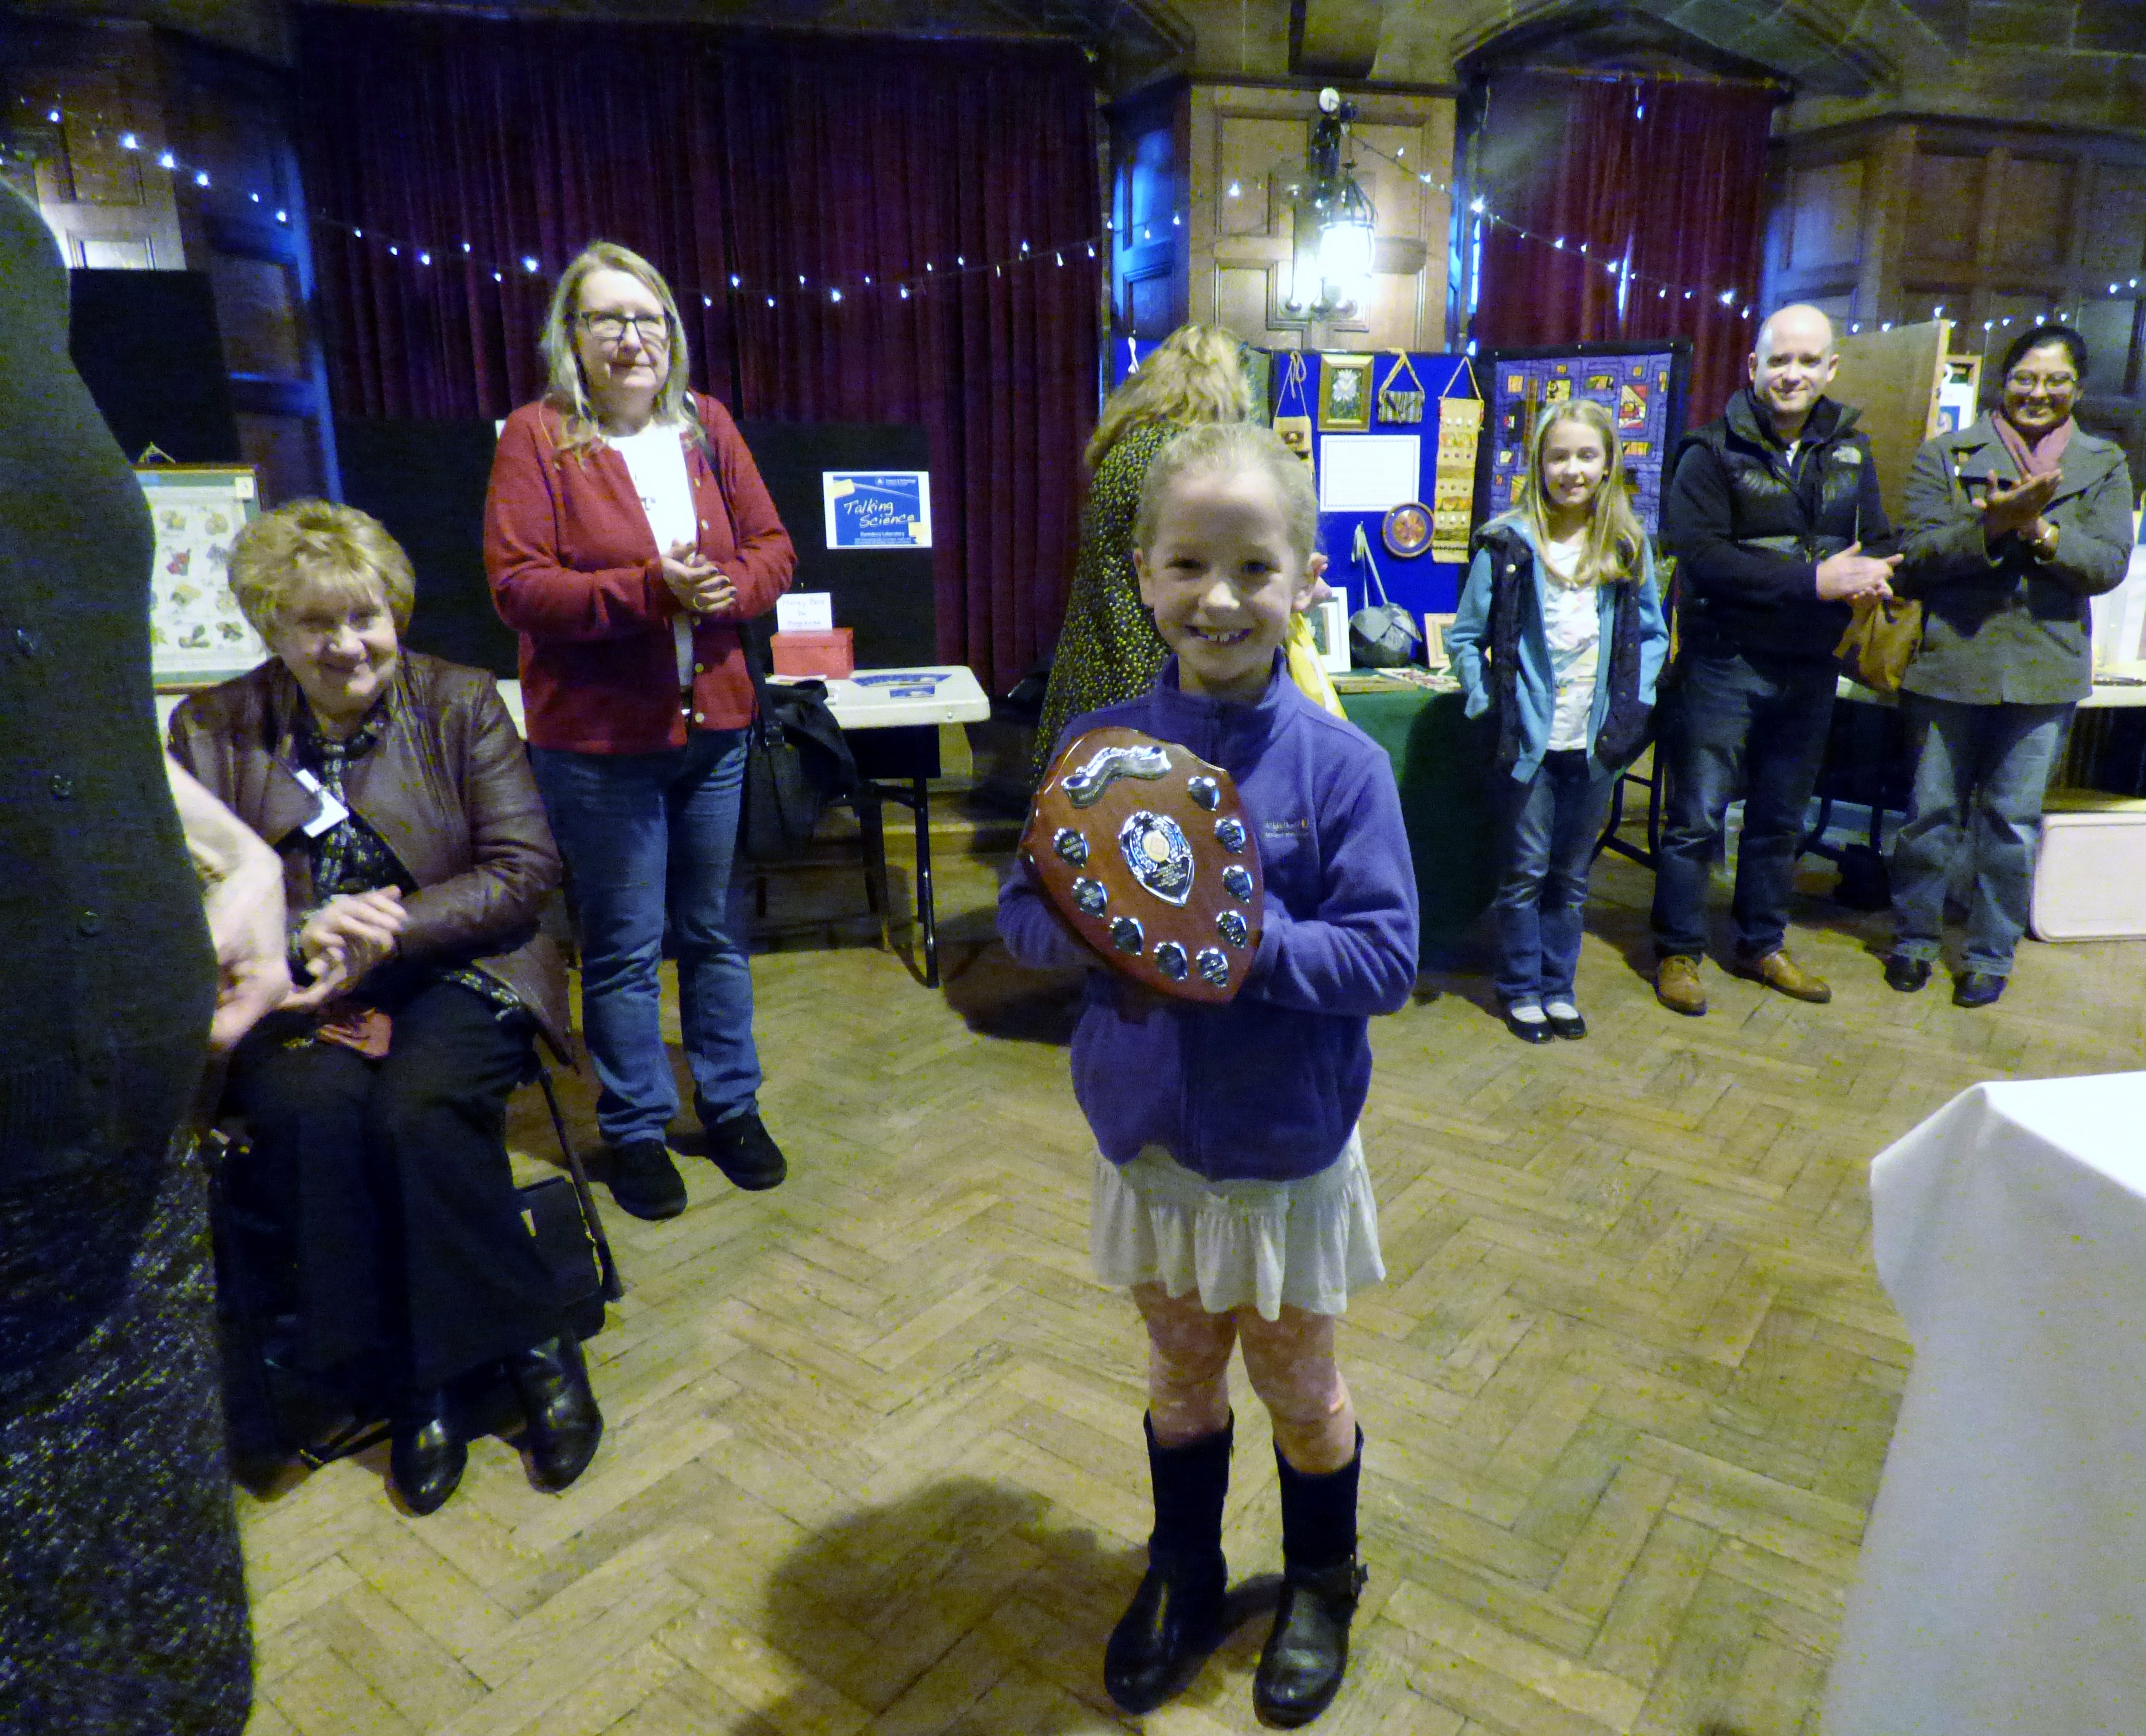 Zoe Lewis won the Sreepur Shield and Cup as Merseyside Young Embroiderer of the year 2016. She was not able to attend so her sisiter Esther accepted the Trophy at MEG Winter Fair 2016